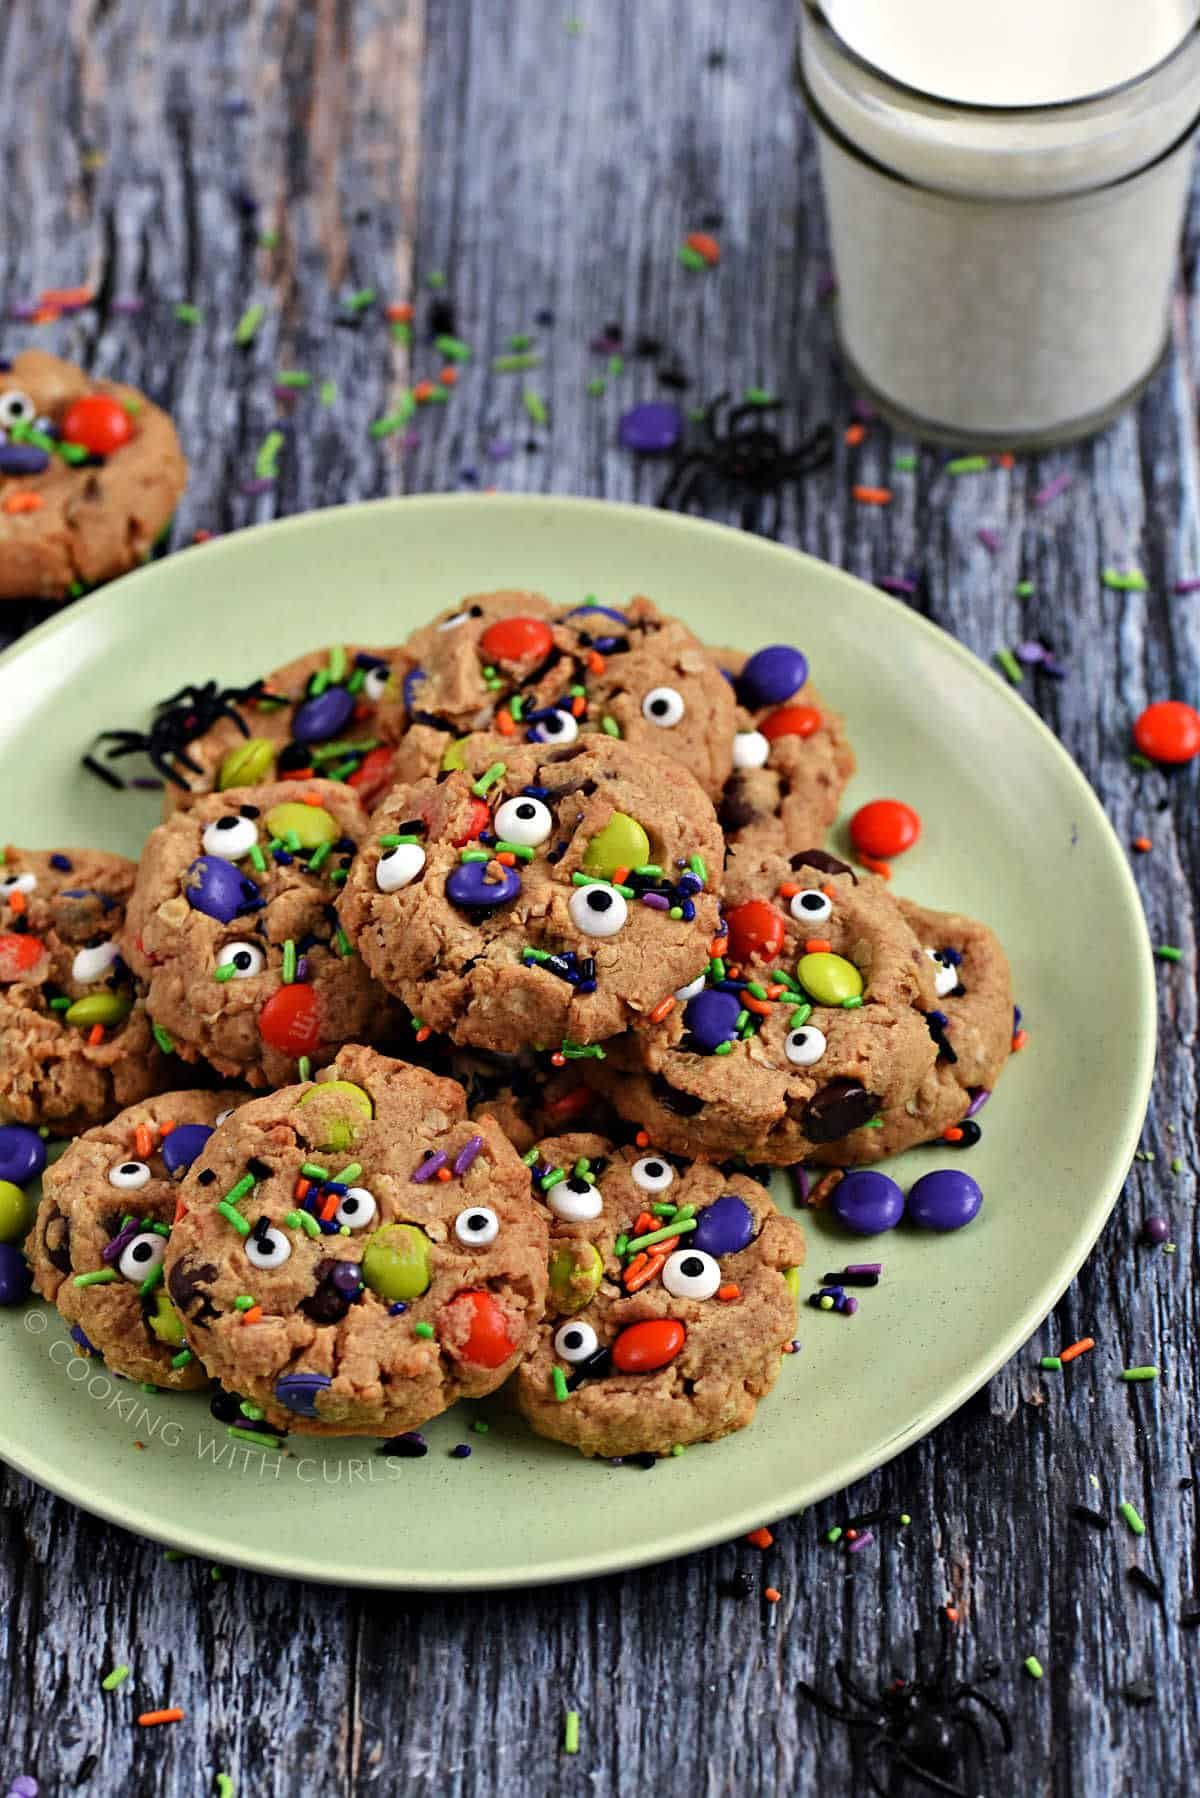 Cookies topped with candy eyes, M&M's, and colorful sprinkles piled up on a green plate surrounded by sprinkles, black spiders, and a glass of milk.